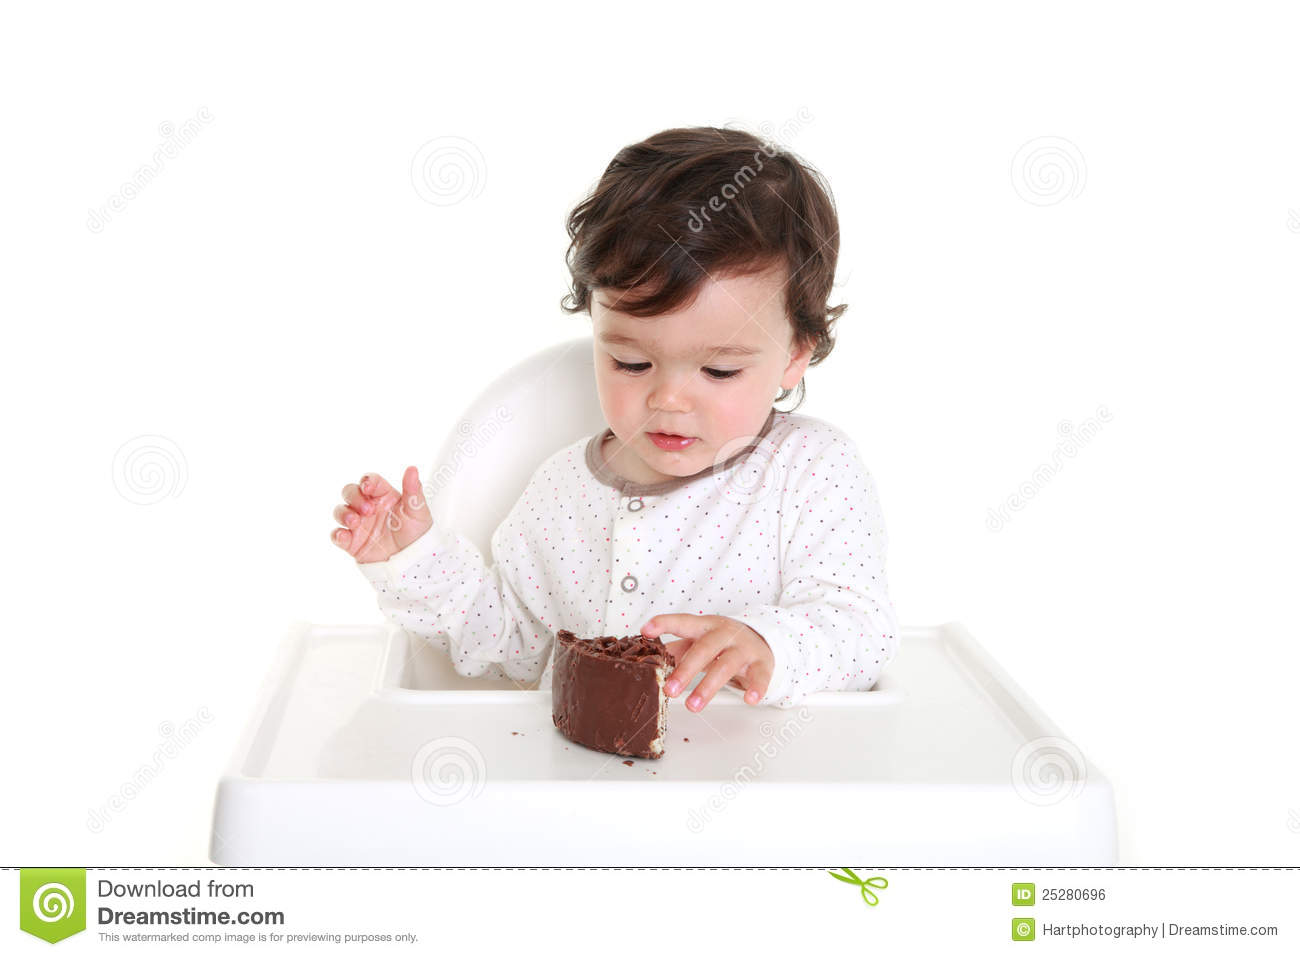 Baby Eating Cake Clipart : Baby With Chocolate Cake Royalty Free Stock Image - Image ...